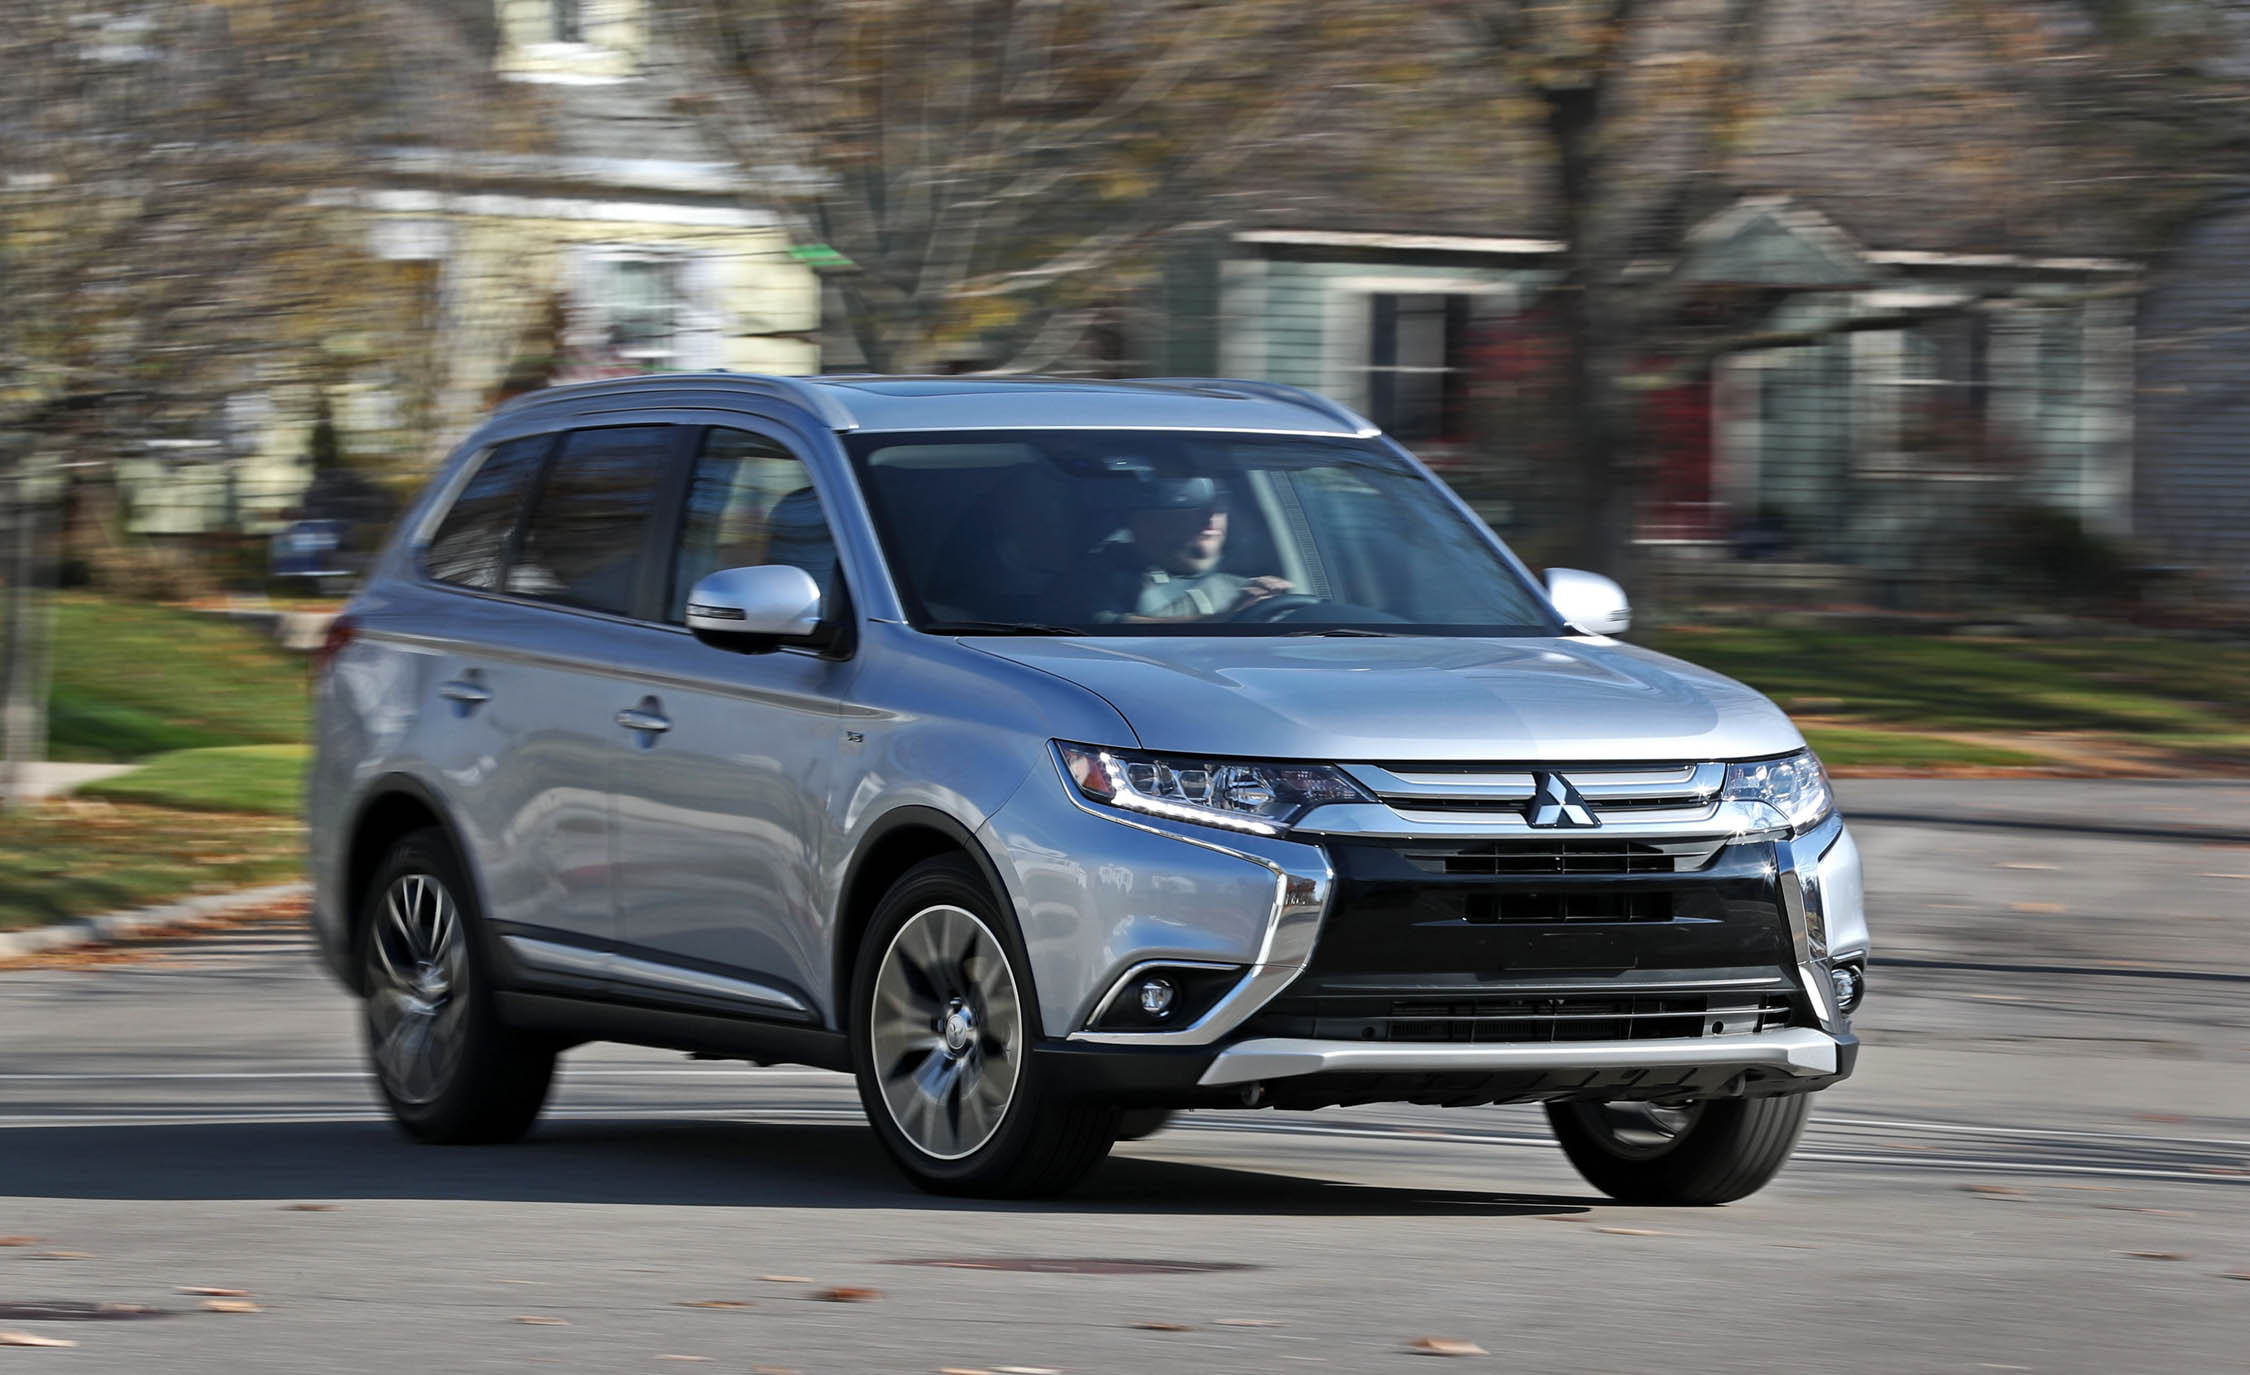 2017 Mitsubishi Outlander   Cars Exclusive Videos and Photos Updates